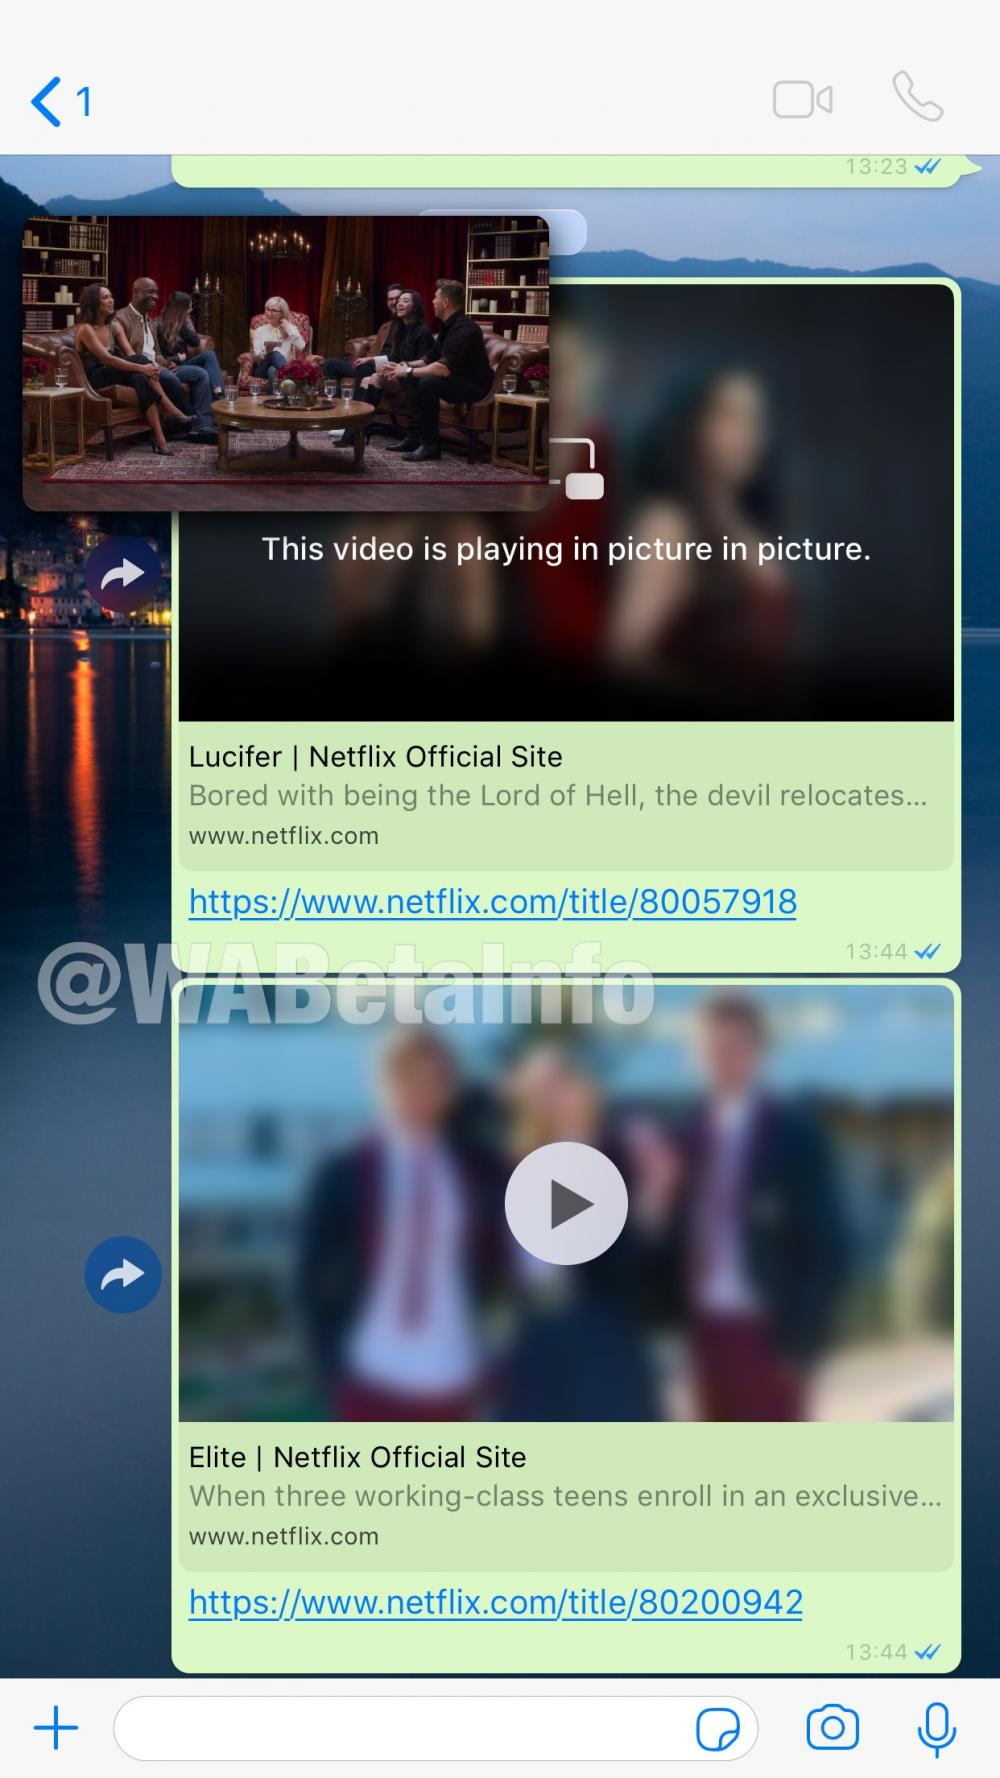 WhatsApp Plays Netflix Videos